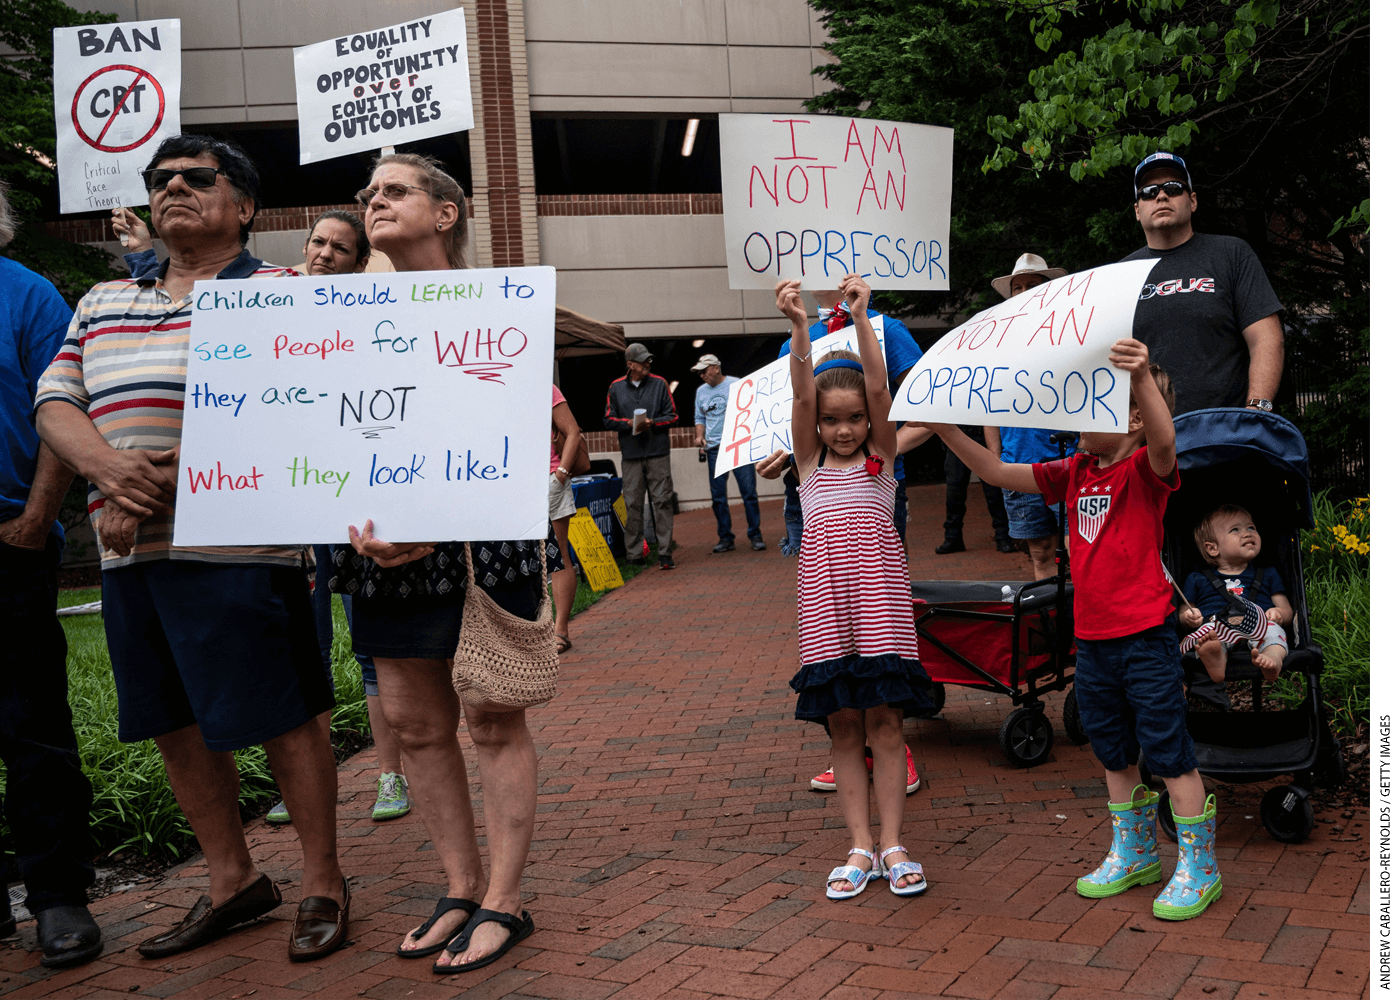 """People hold up signs during a rally against """"critical race theory"""" being taught in schools. The rally was at the Loudoun County Government center in Leesburg, Virginia on June 12, 2021."""